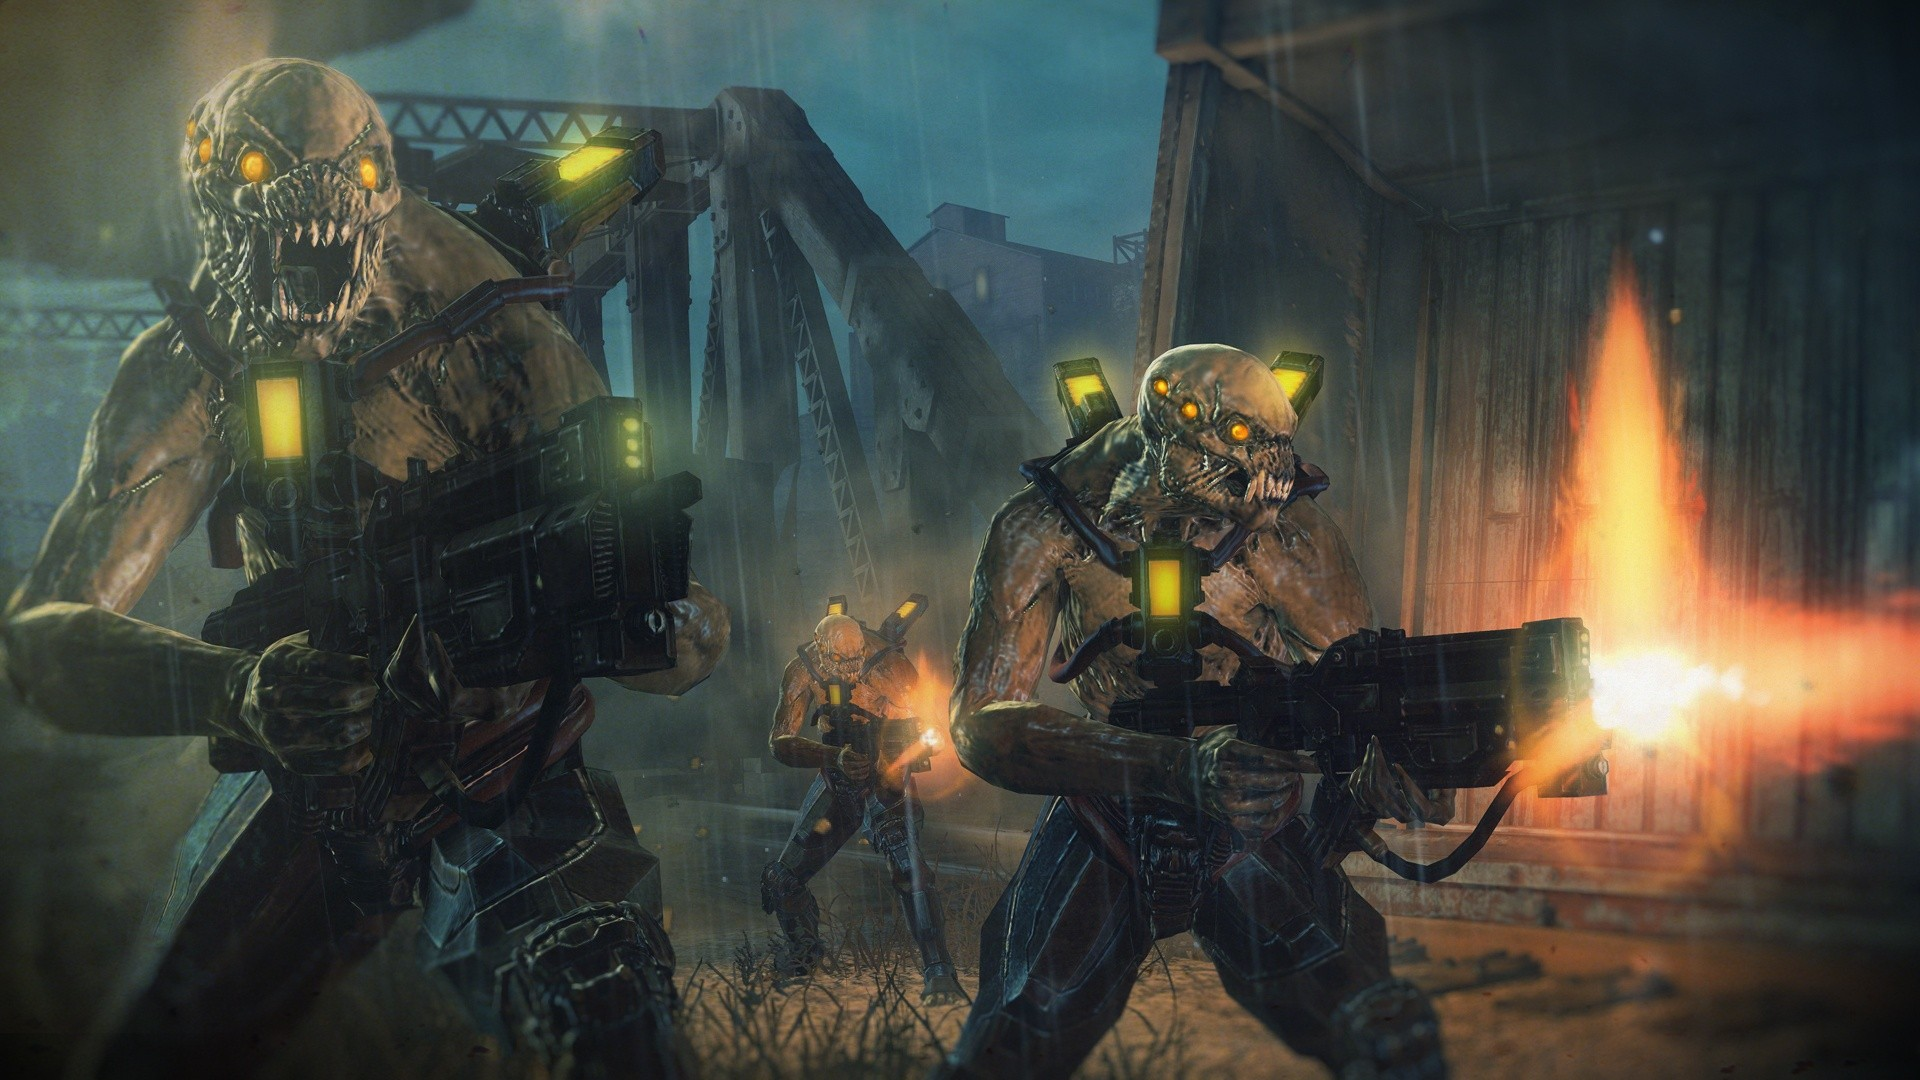 Resistance screenshot